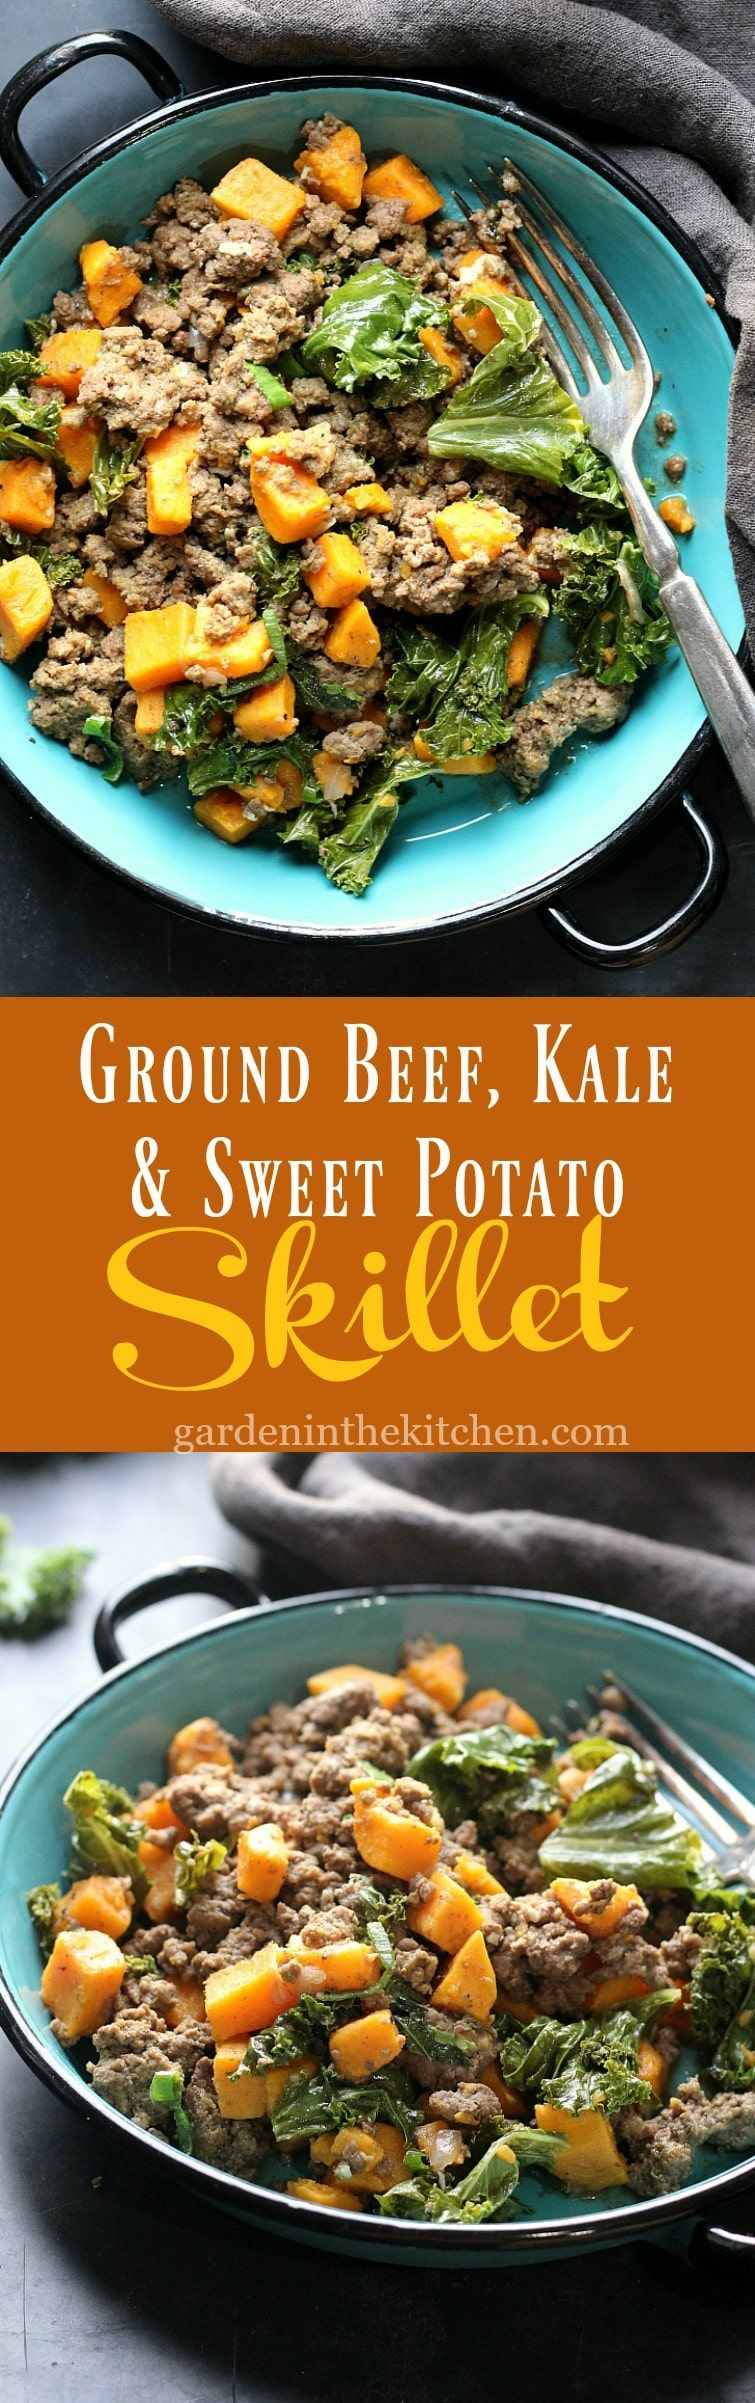 Ground Beef Kale Sweet Potato Skillet Garden In The Kitchen Recipe Sweet Potato Skillet Sweet Potato Recipes Healthy Ground Beef